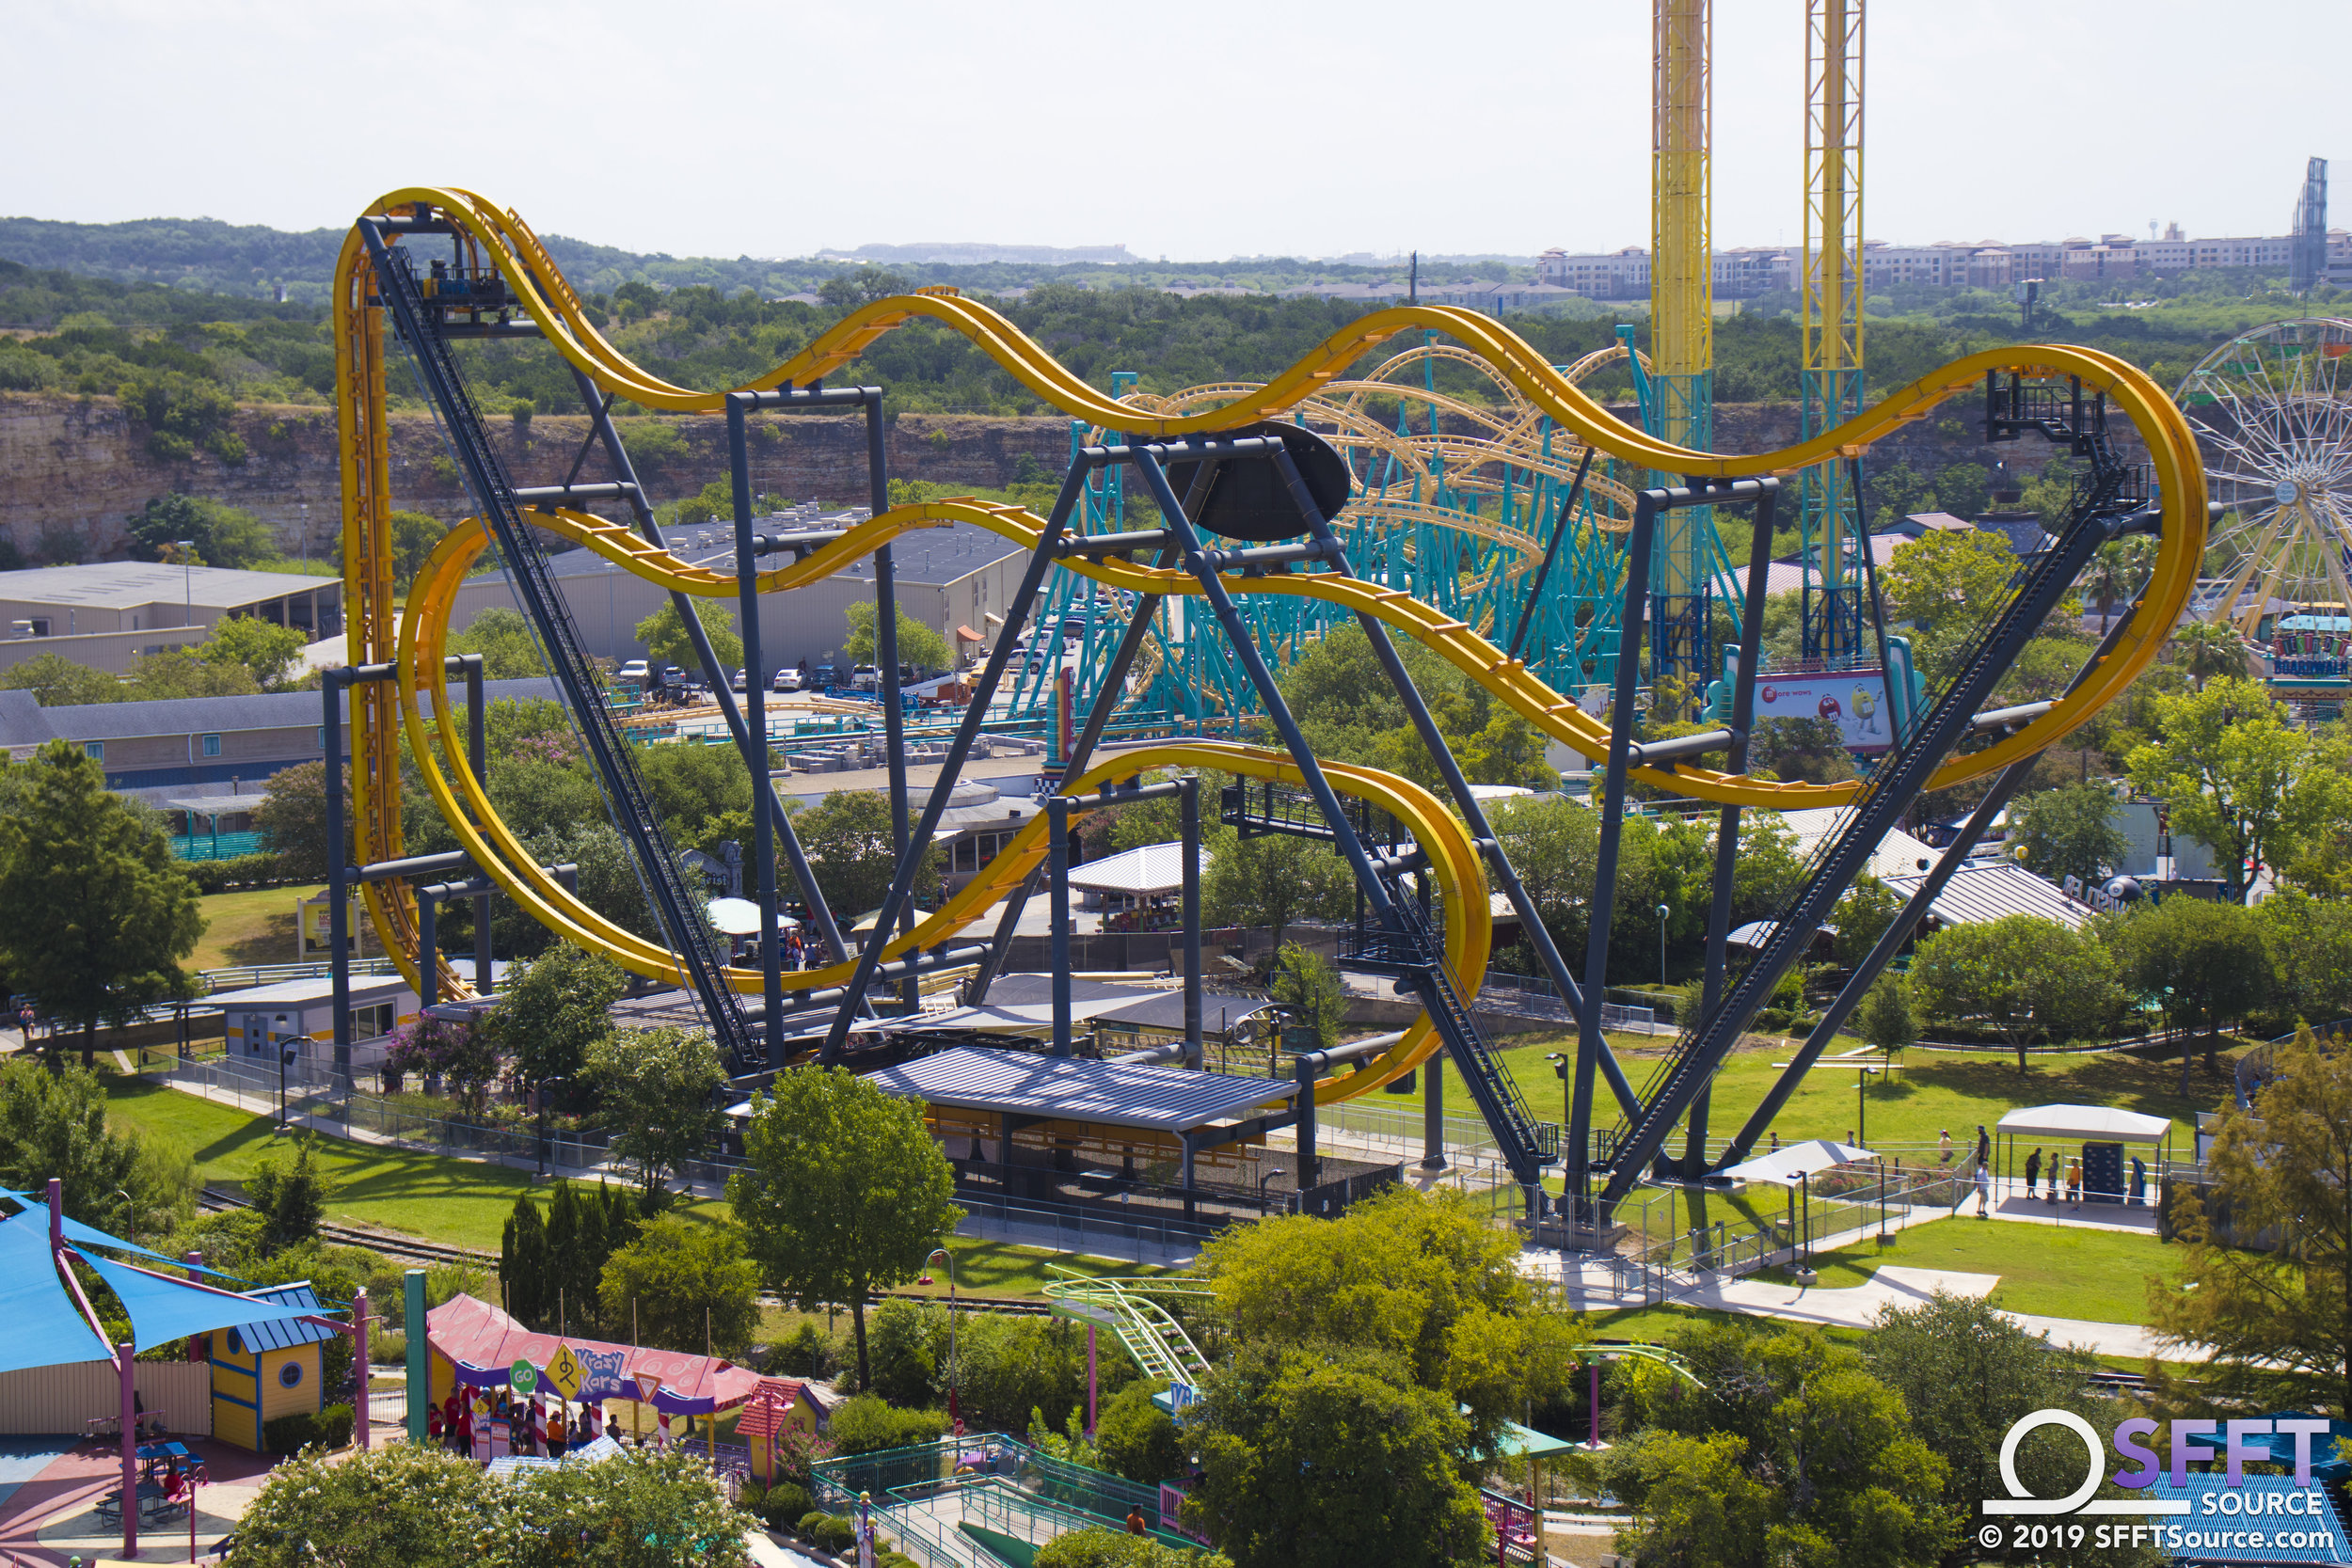 A view of Batman: The Ride from atop the quarry wall.